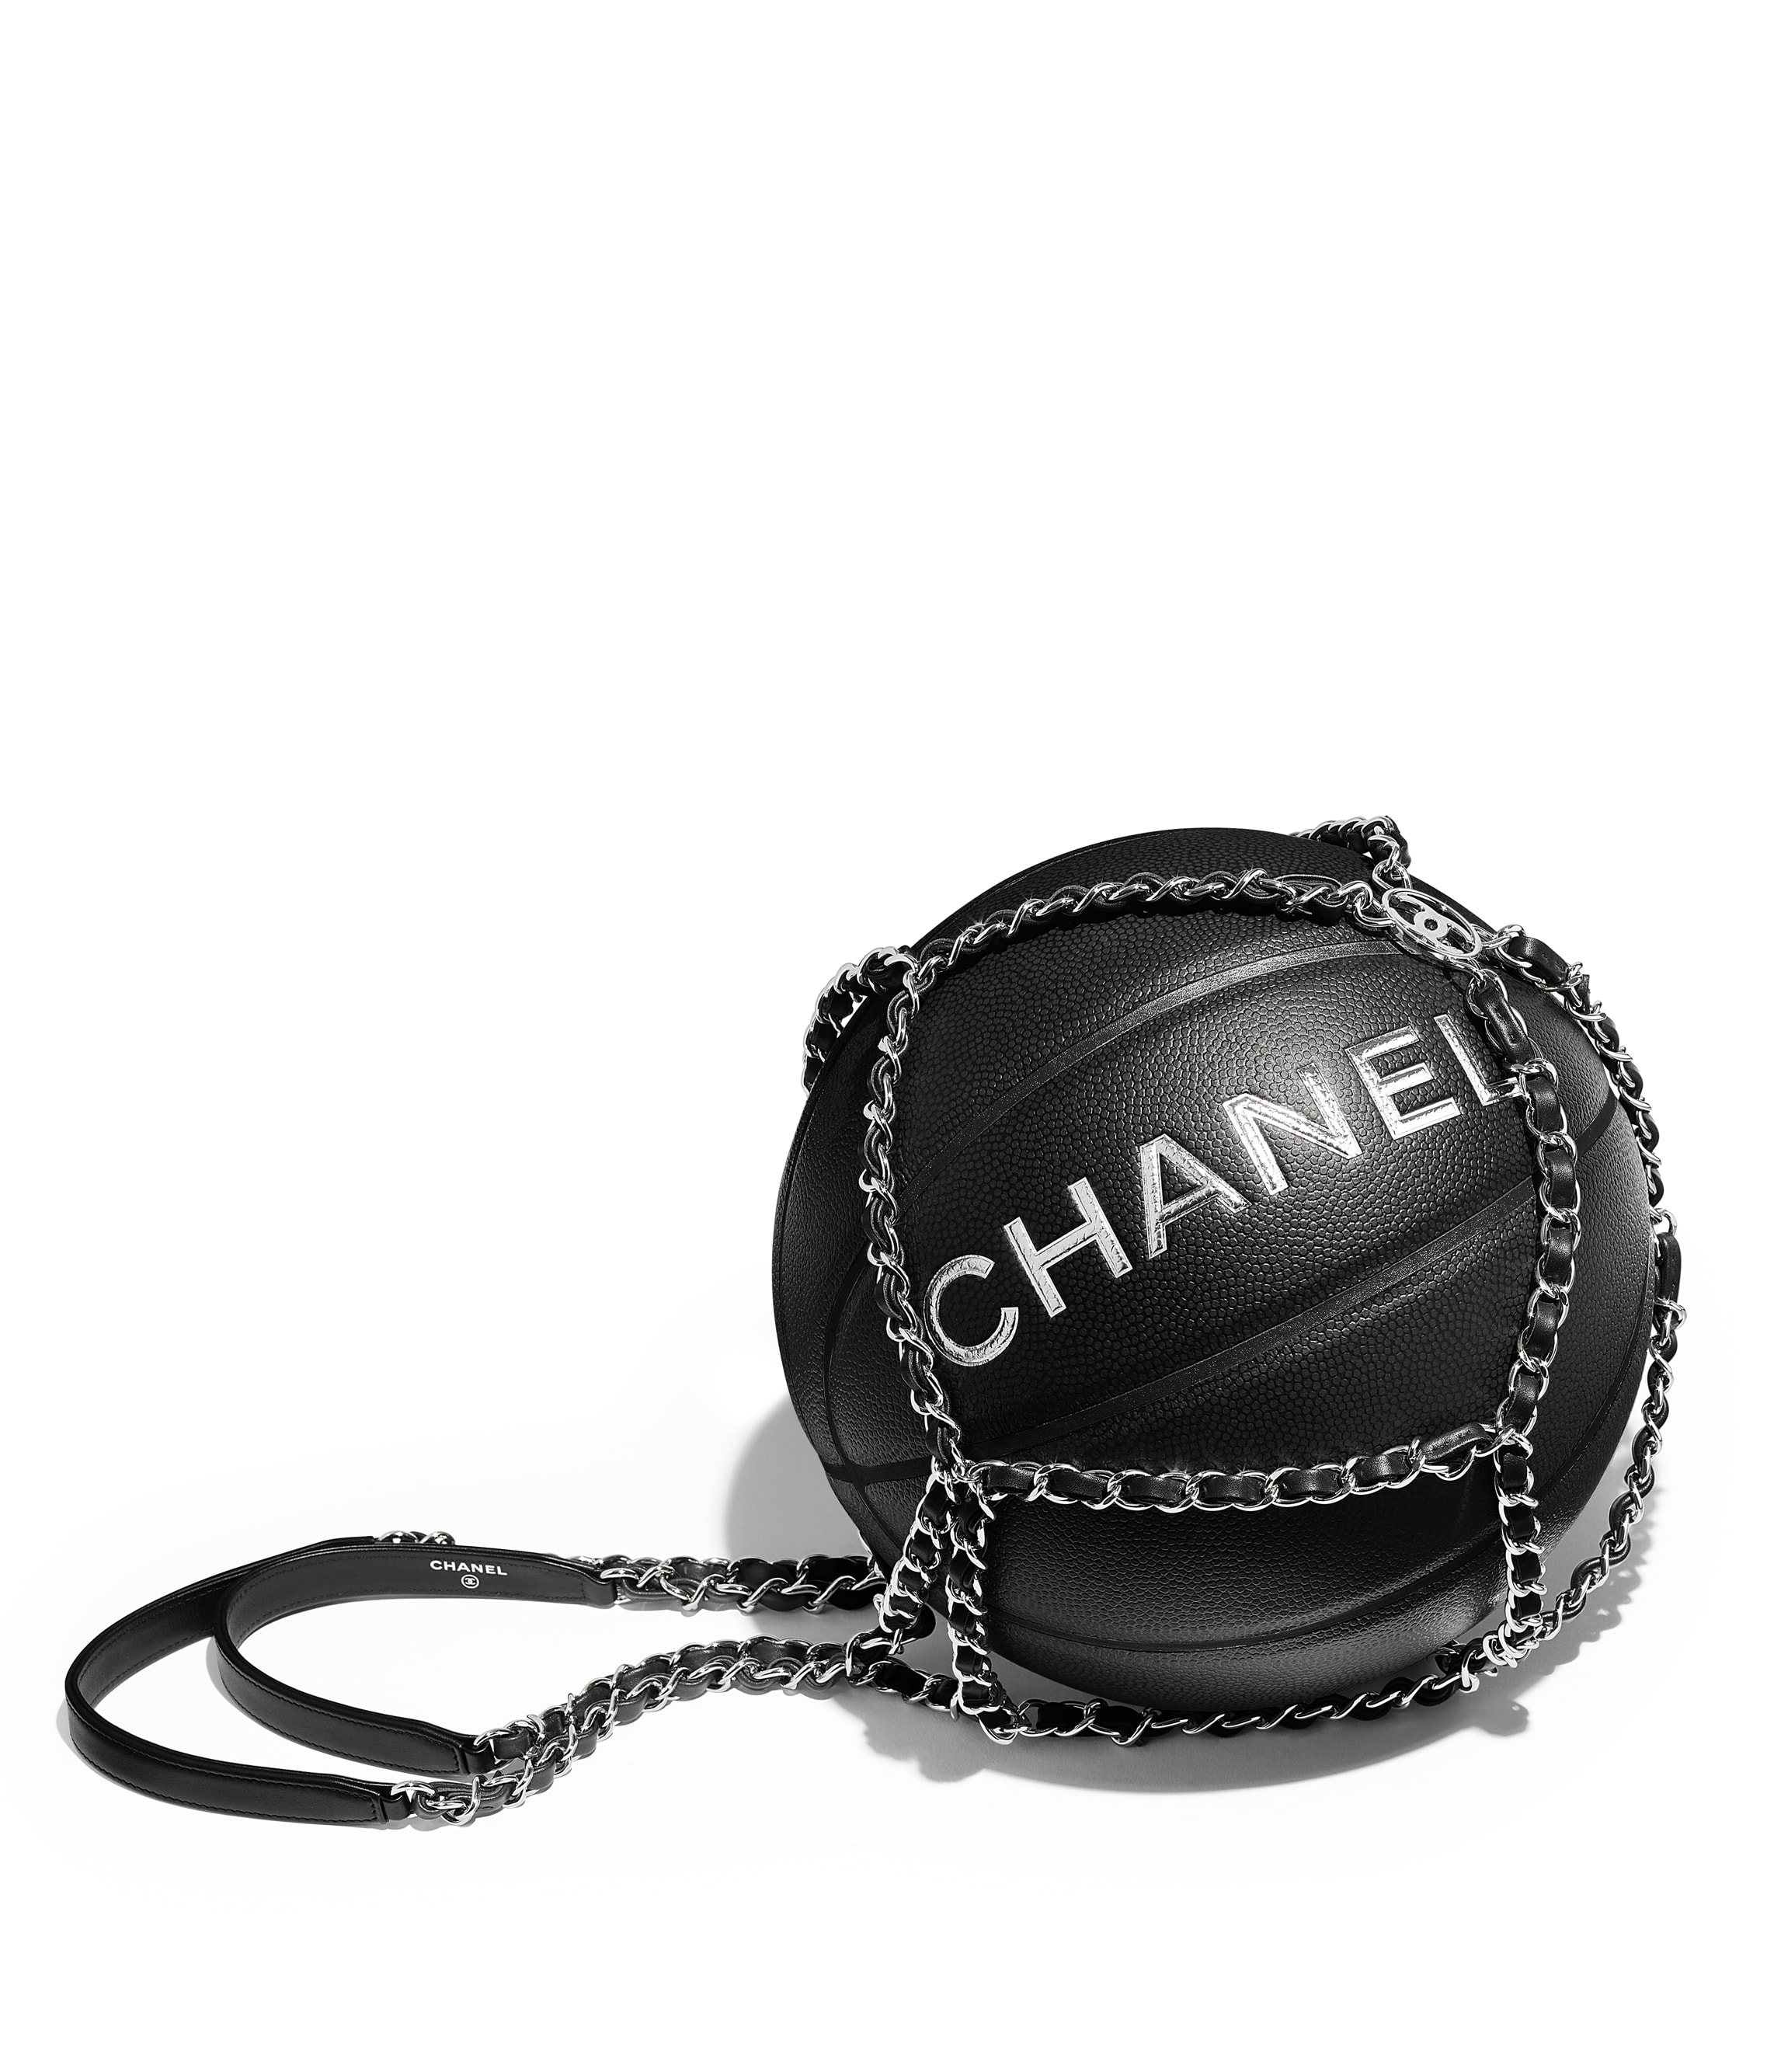 af47336ff77a01 Other accessories - CHANEL